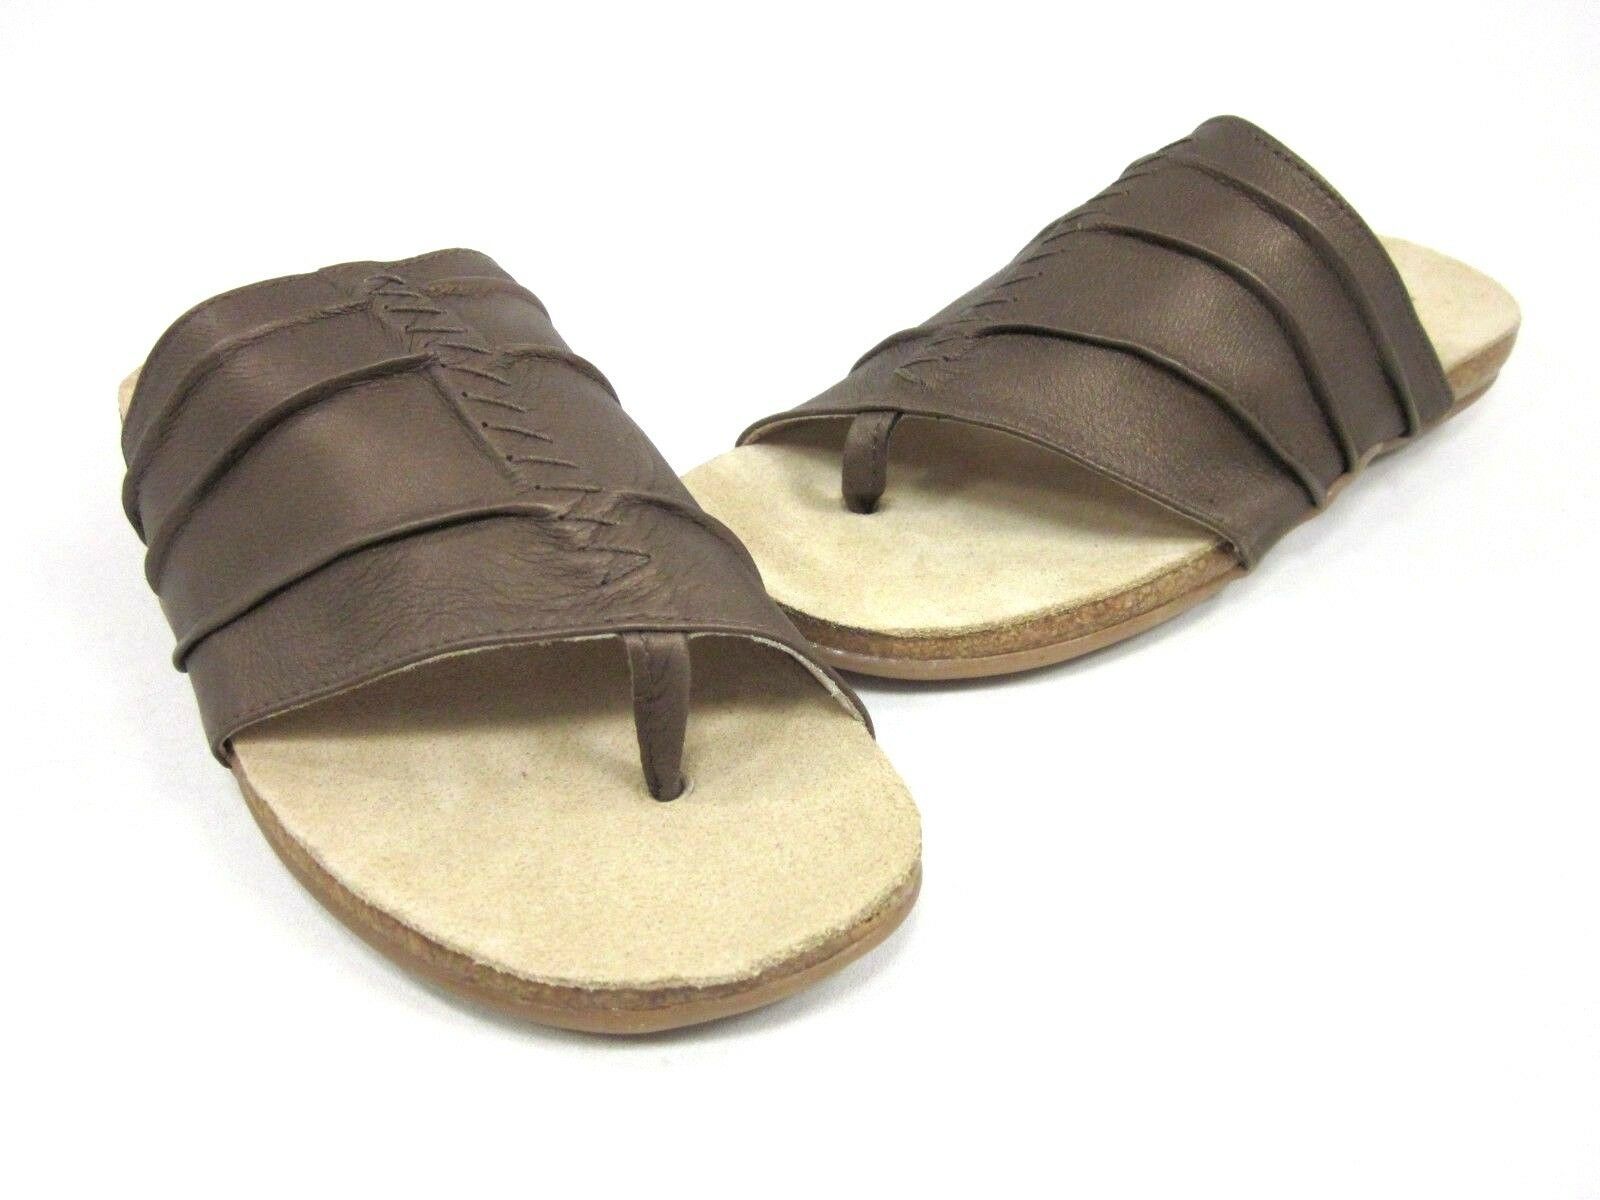 HAFLINGER WOMEN'S RENEE THONG SANDAL, BRONZE, 36 EU 10 US, MEDIUM, NEW W O BOX